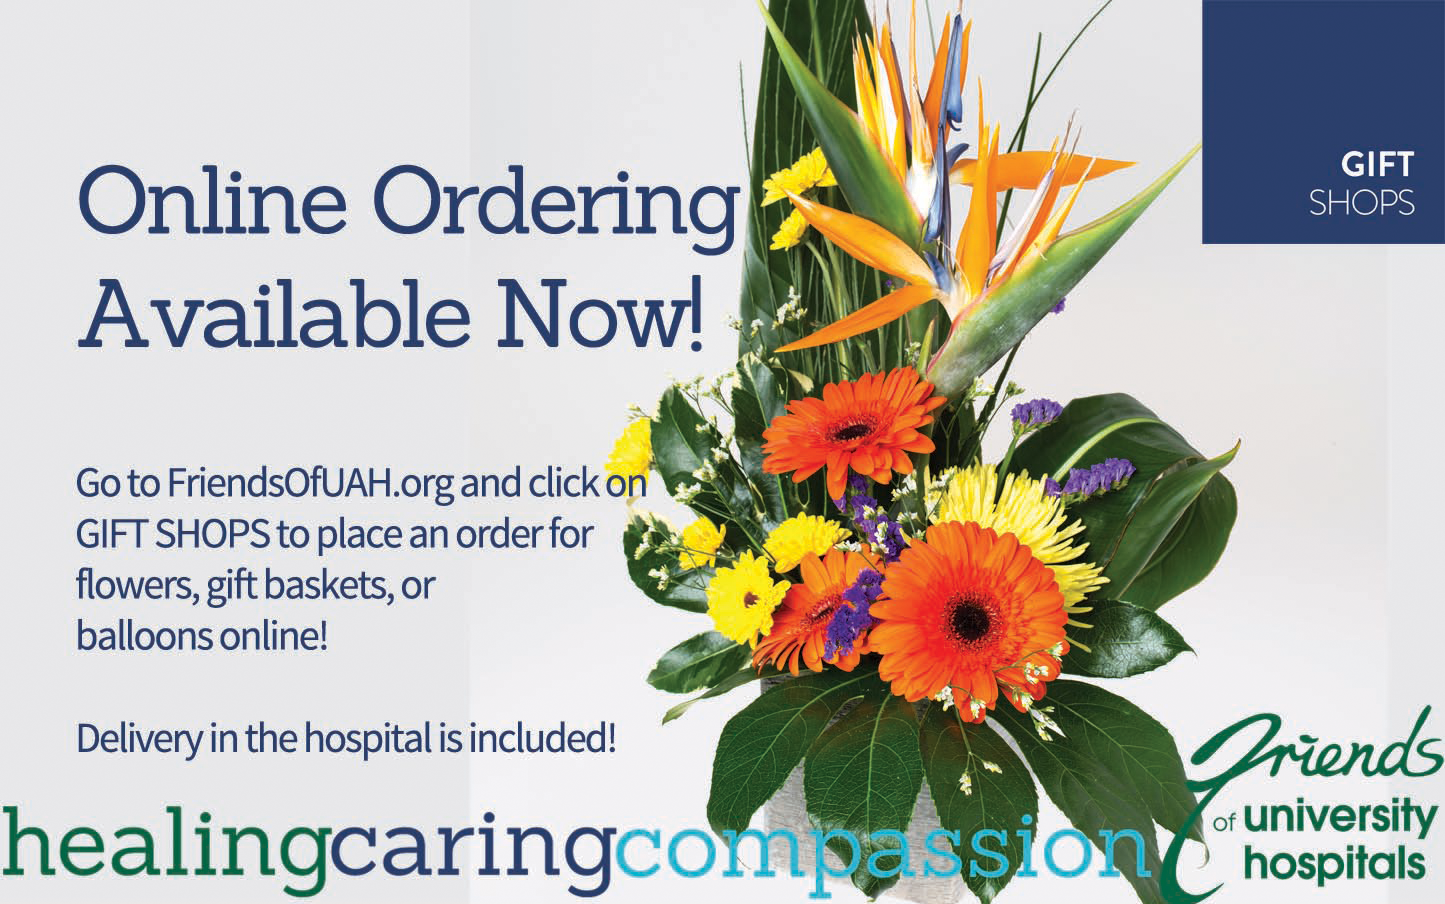 friends gift shop, online orders, flowers, hospital, gifts, balloons